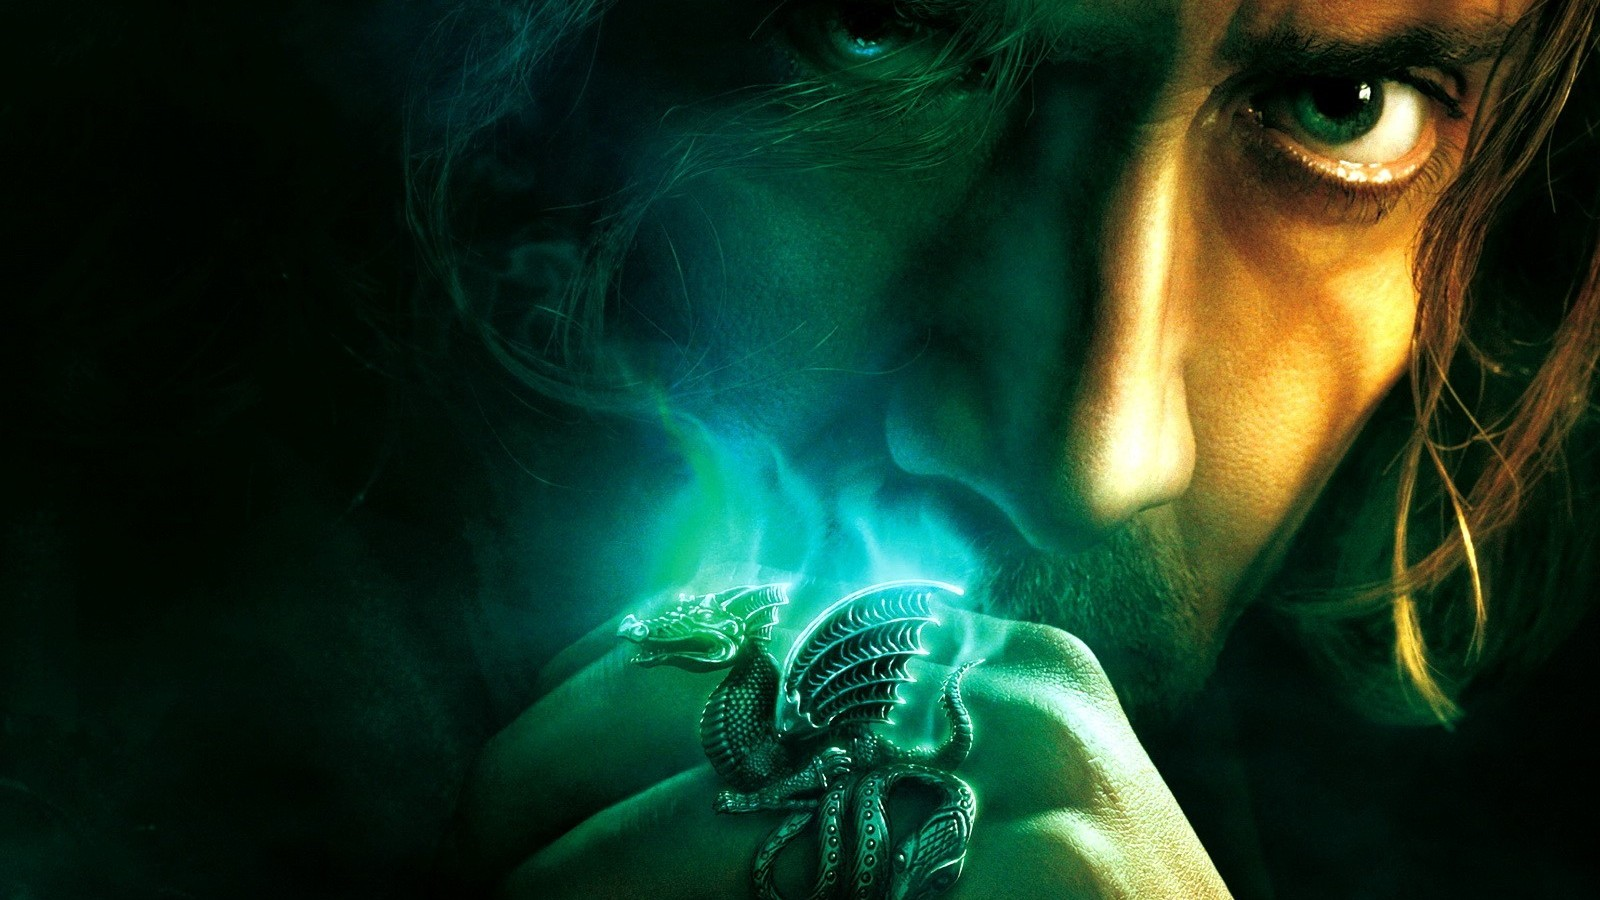 The Sorcerer's Apprentice Amazing HD Wallpapers - All HD